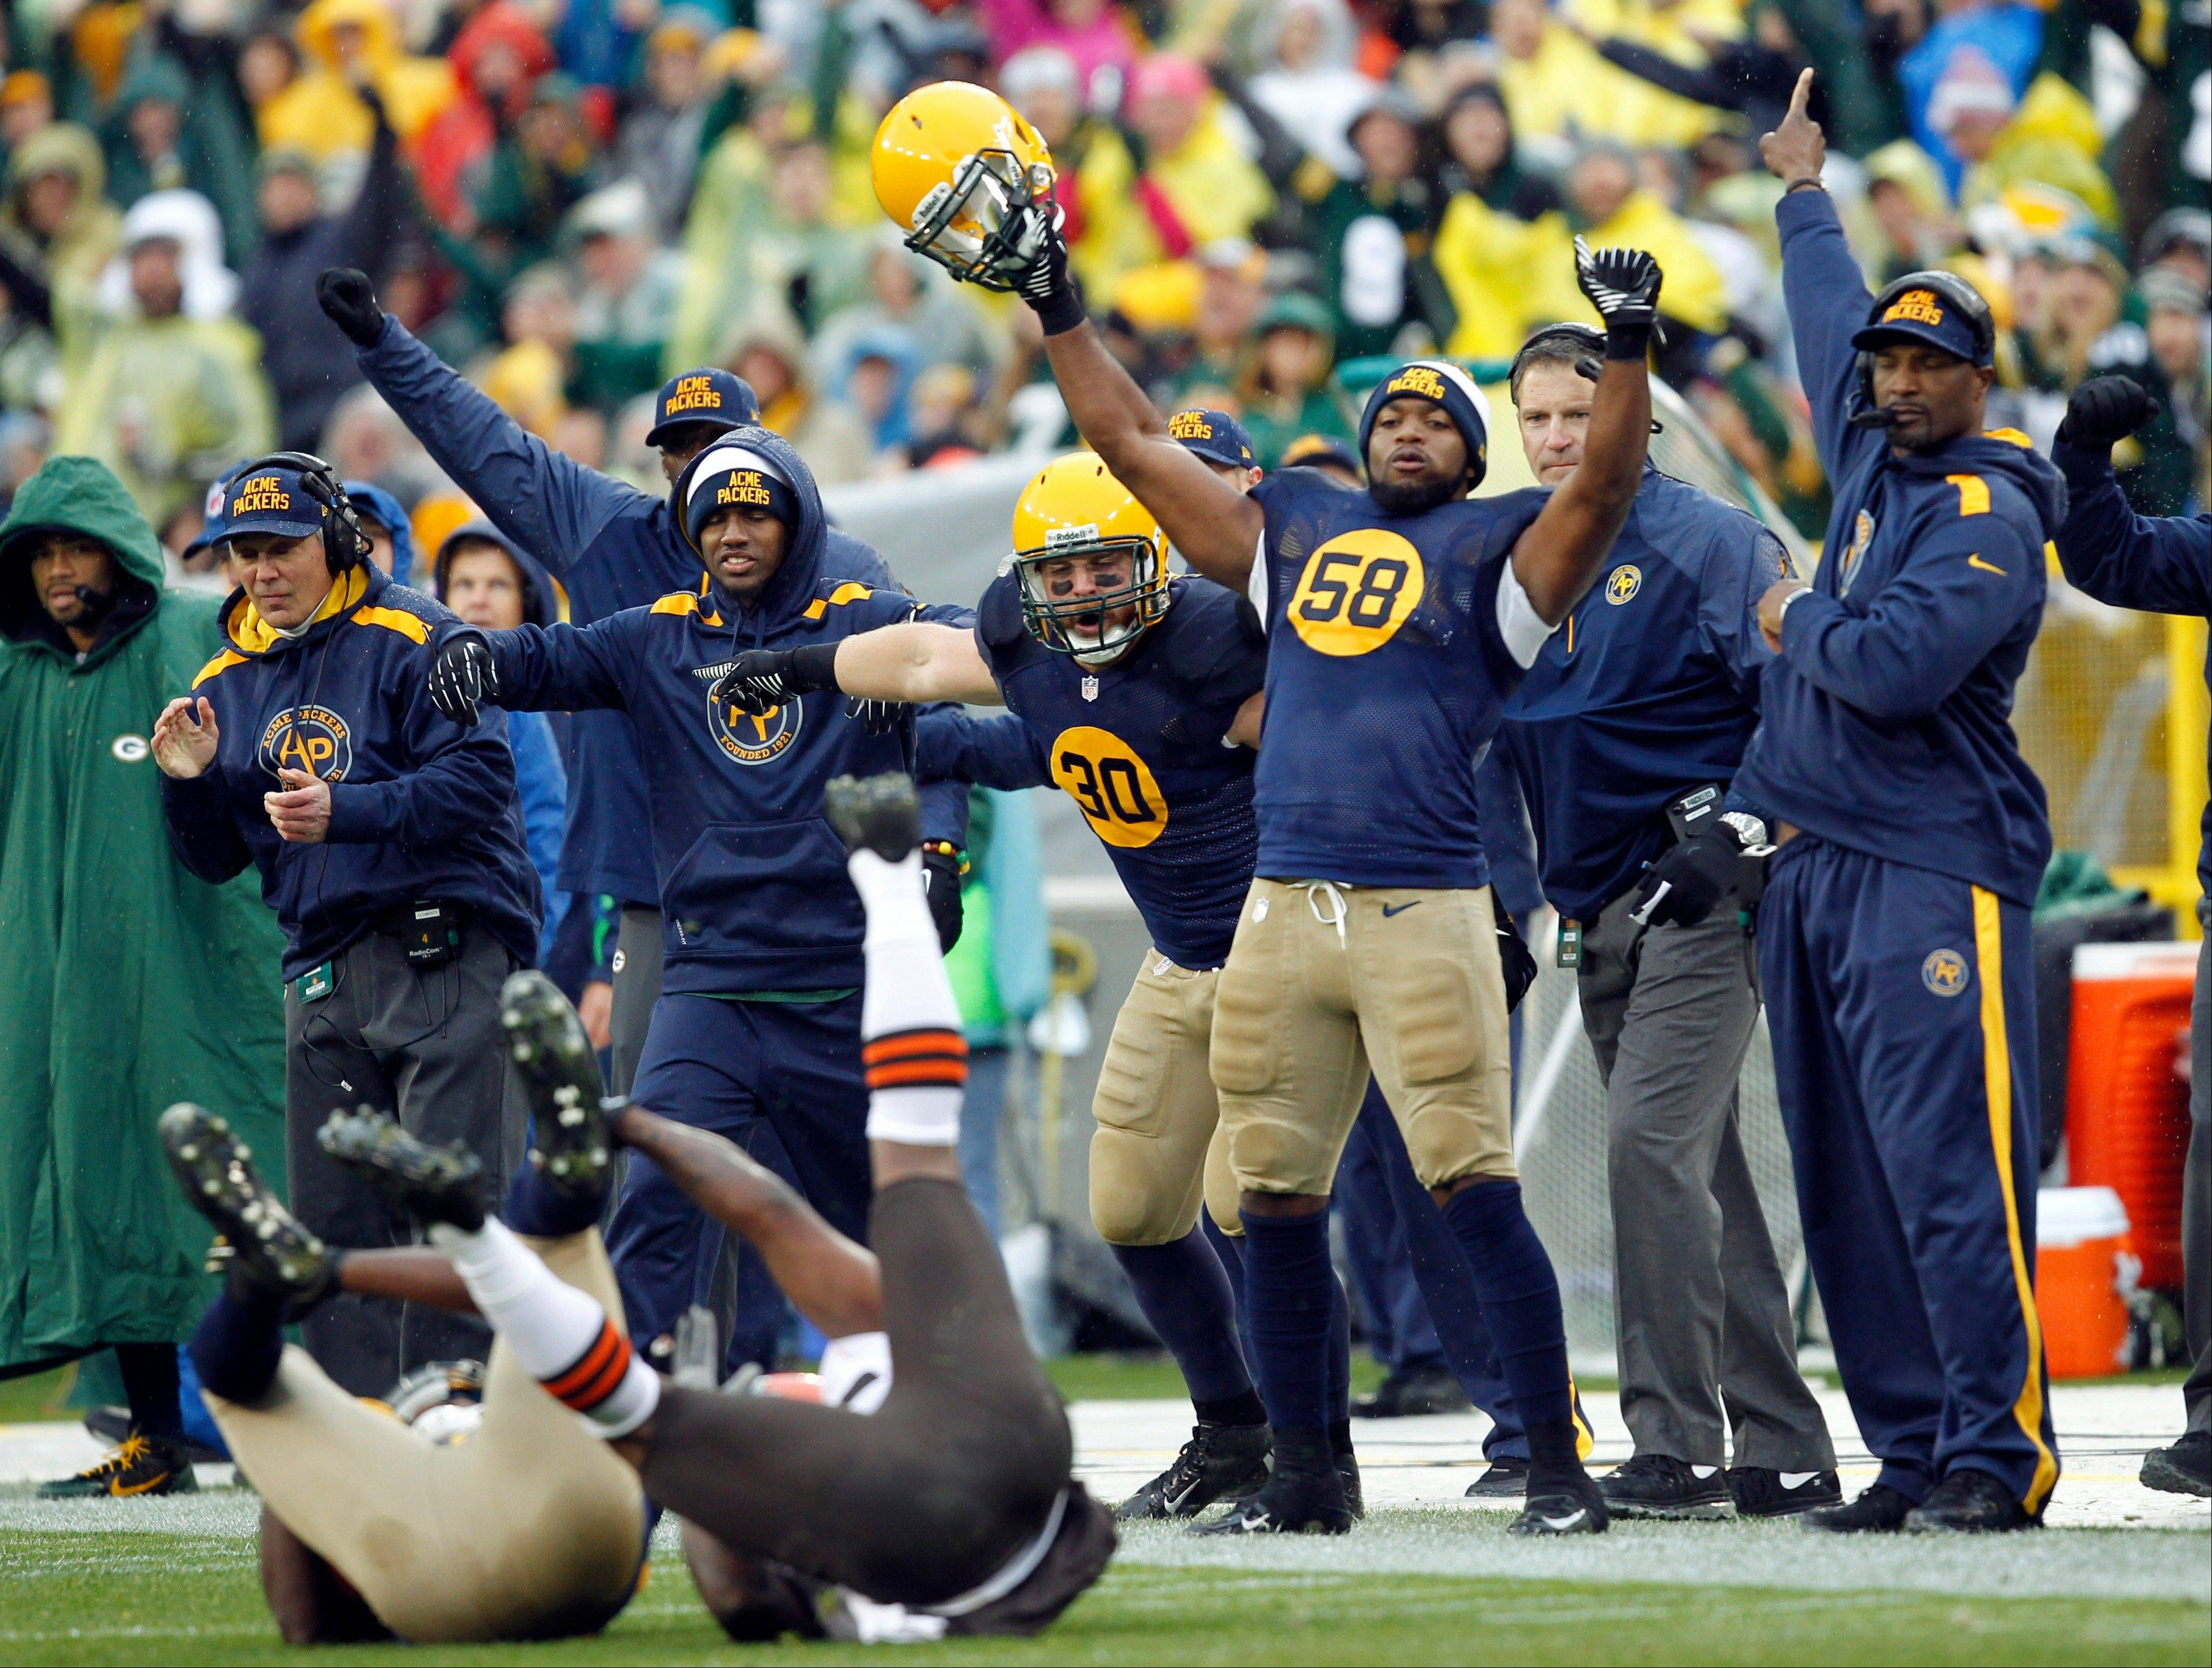 The Green Bay Packers bench celebrates after cornerback Davon House intercepted a pass during the first half of an NFL football game against the Cleveland Browns Sunday, Oct. 20, 2013, in Green Bay, Wis.